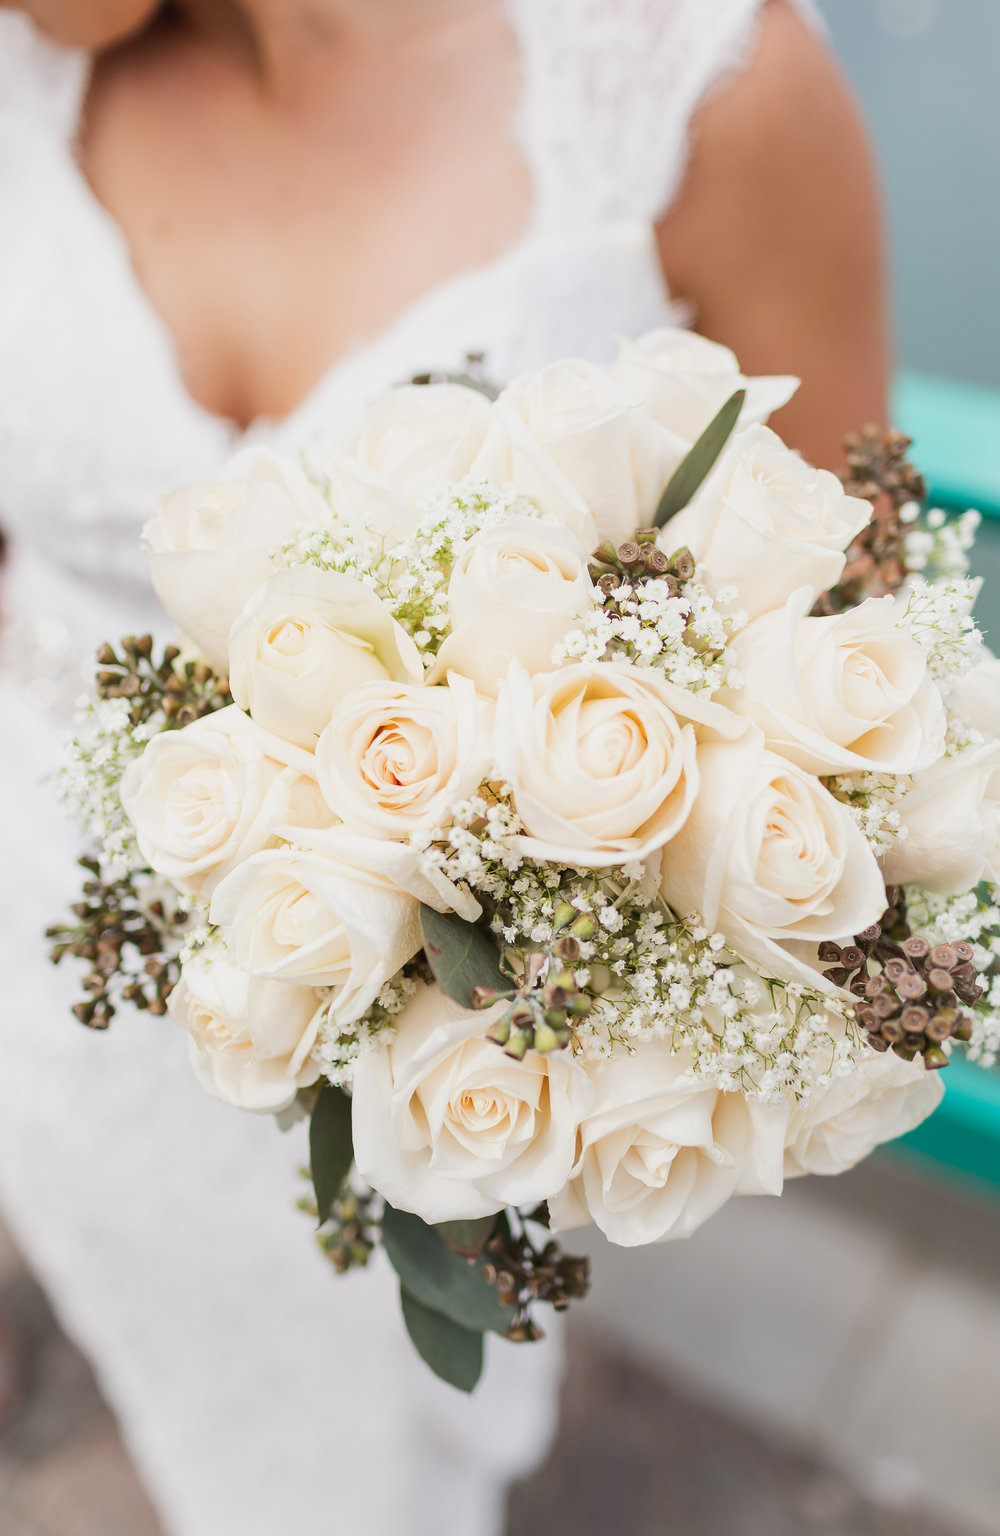 Photo of White Roses for Wedding Bouquet.jpg